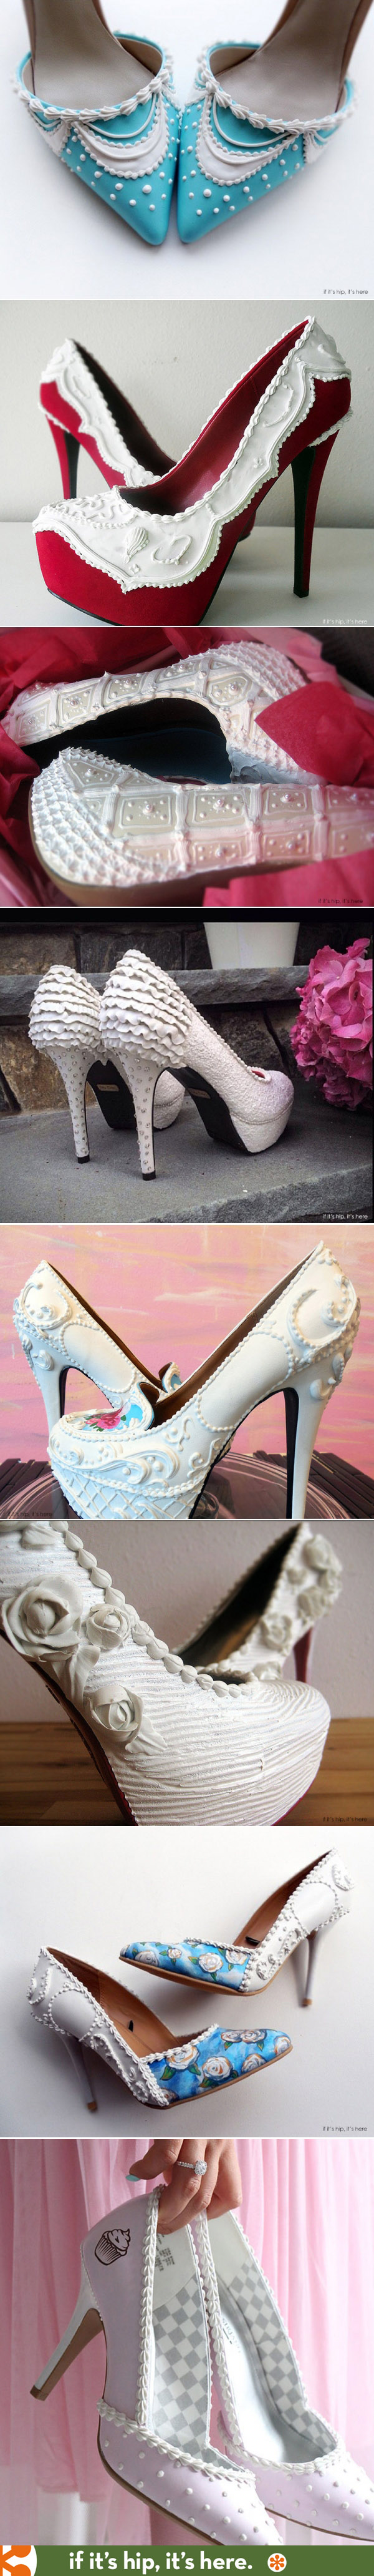 Custom Wedding shoes designed to match your cake! http://www.ifitshipitshere.com/wearable-confections-shoe-bakery-will-give-sugar-high/ #bride #wedding